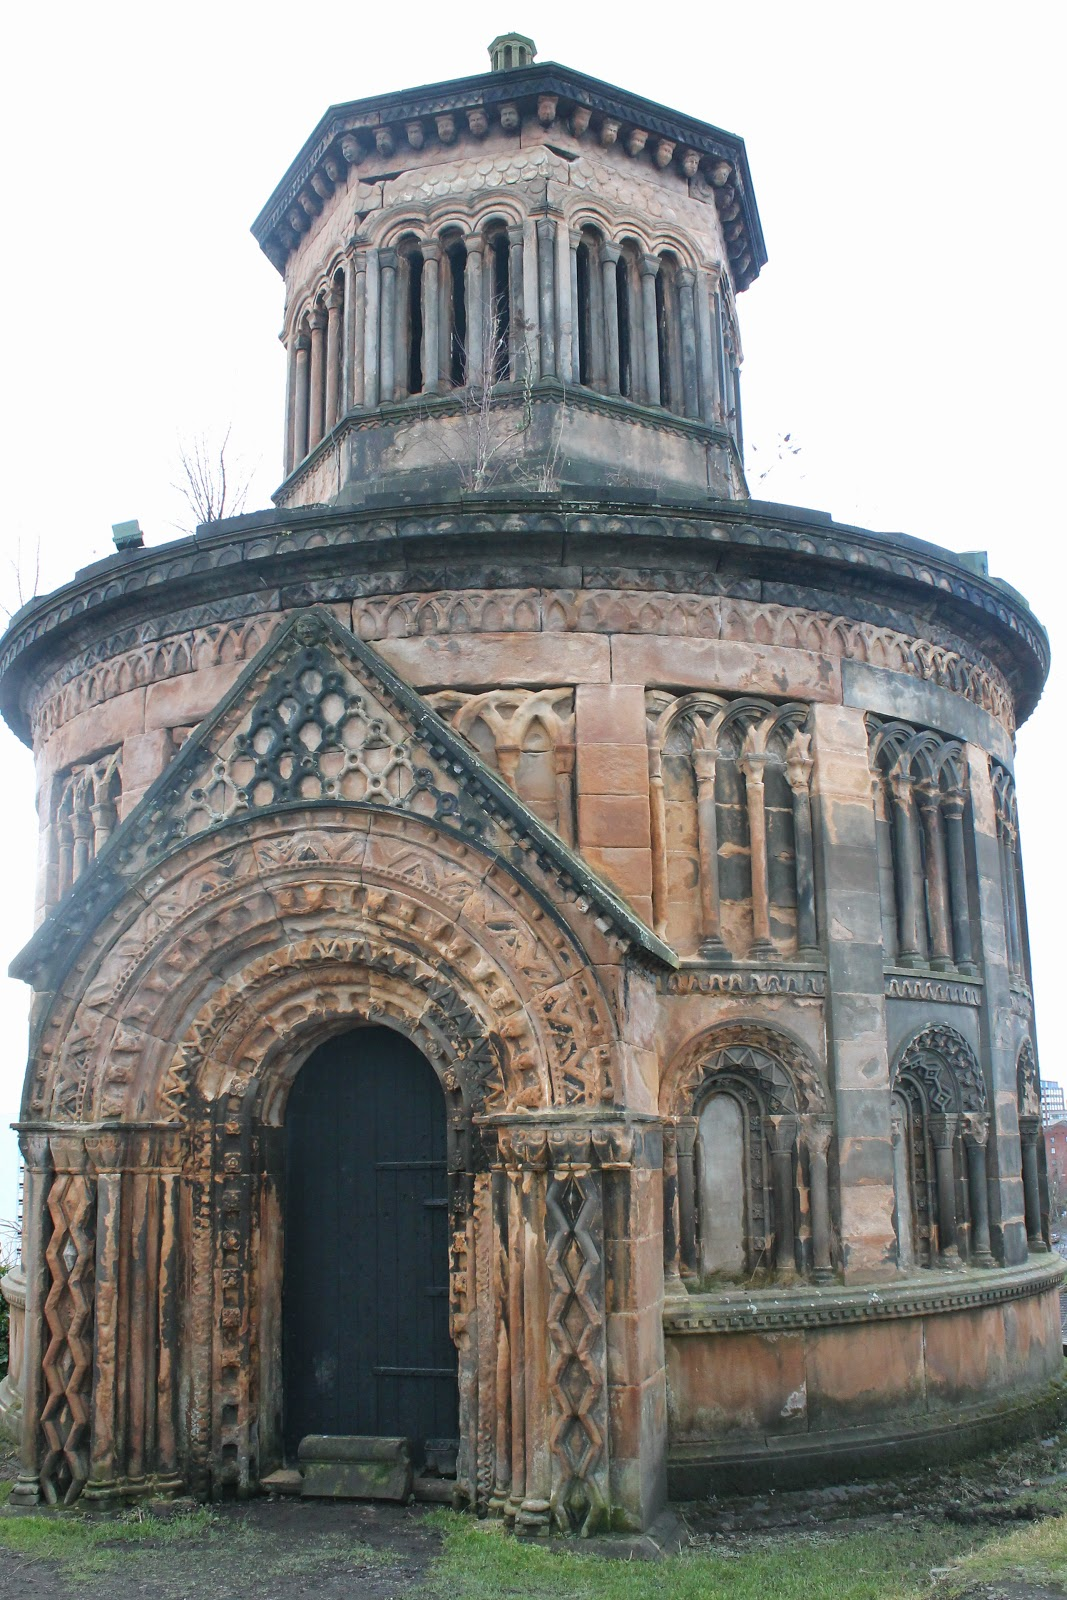 Glasgow Necropolis tomb